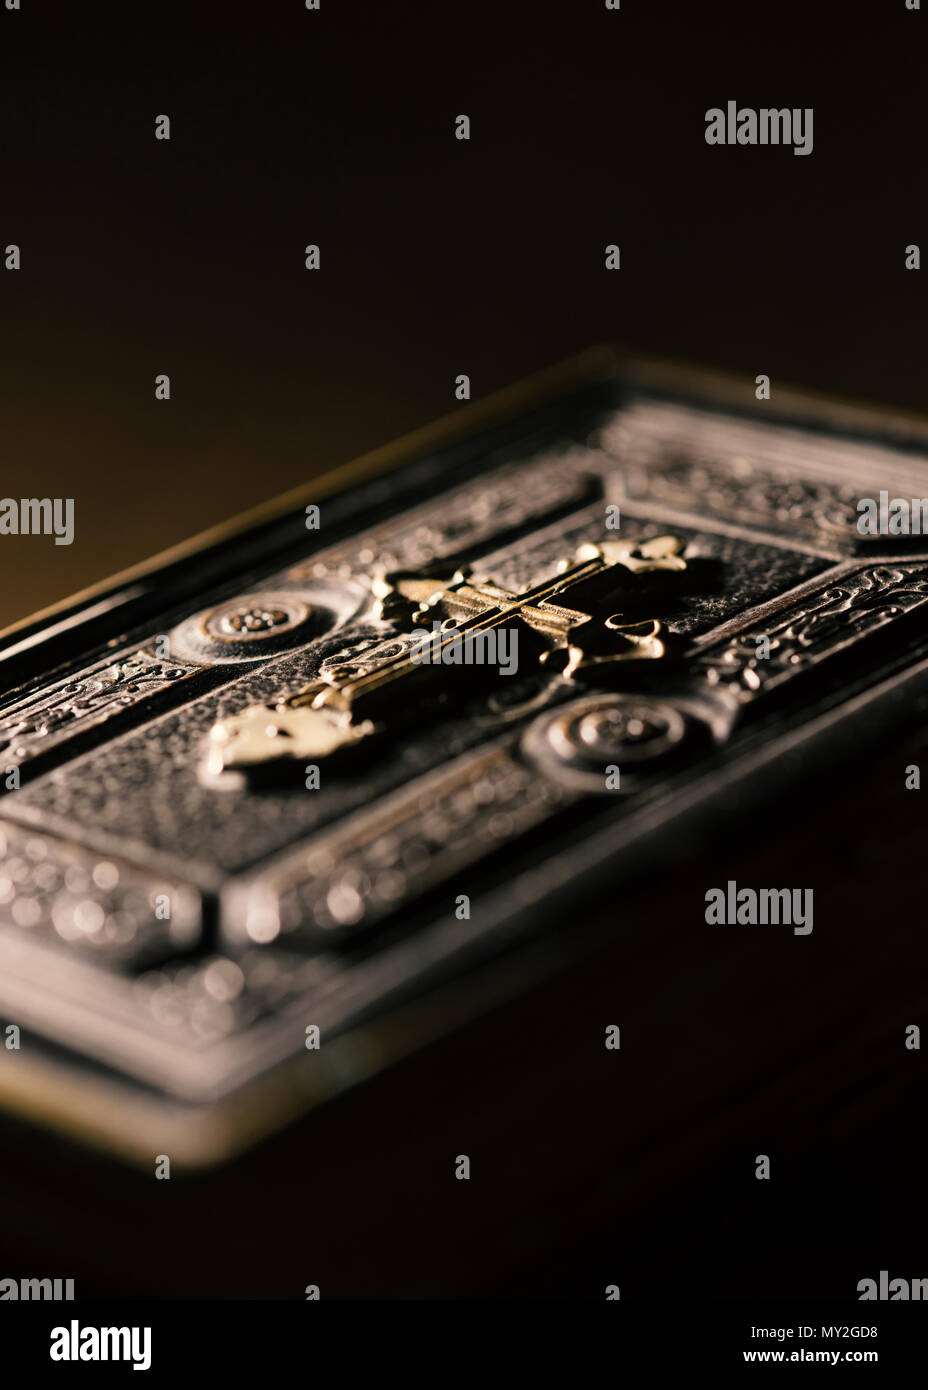 Precious antique Bible with golden cross close up, religion and spirituality concept - Stock Image